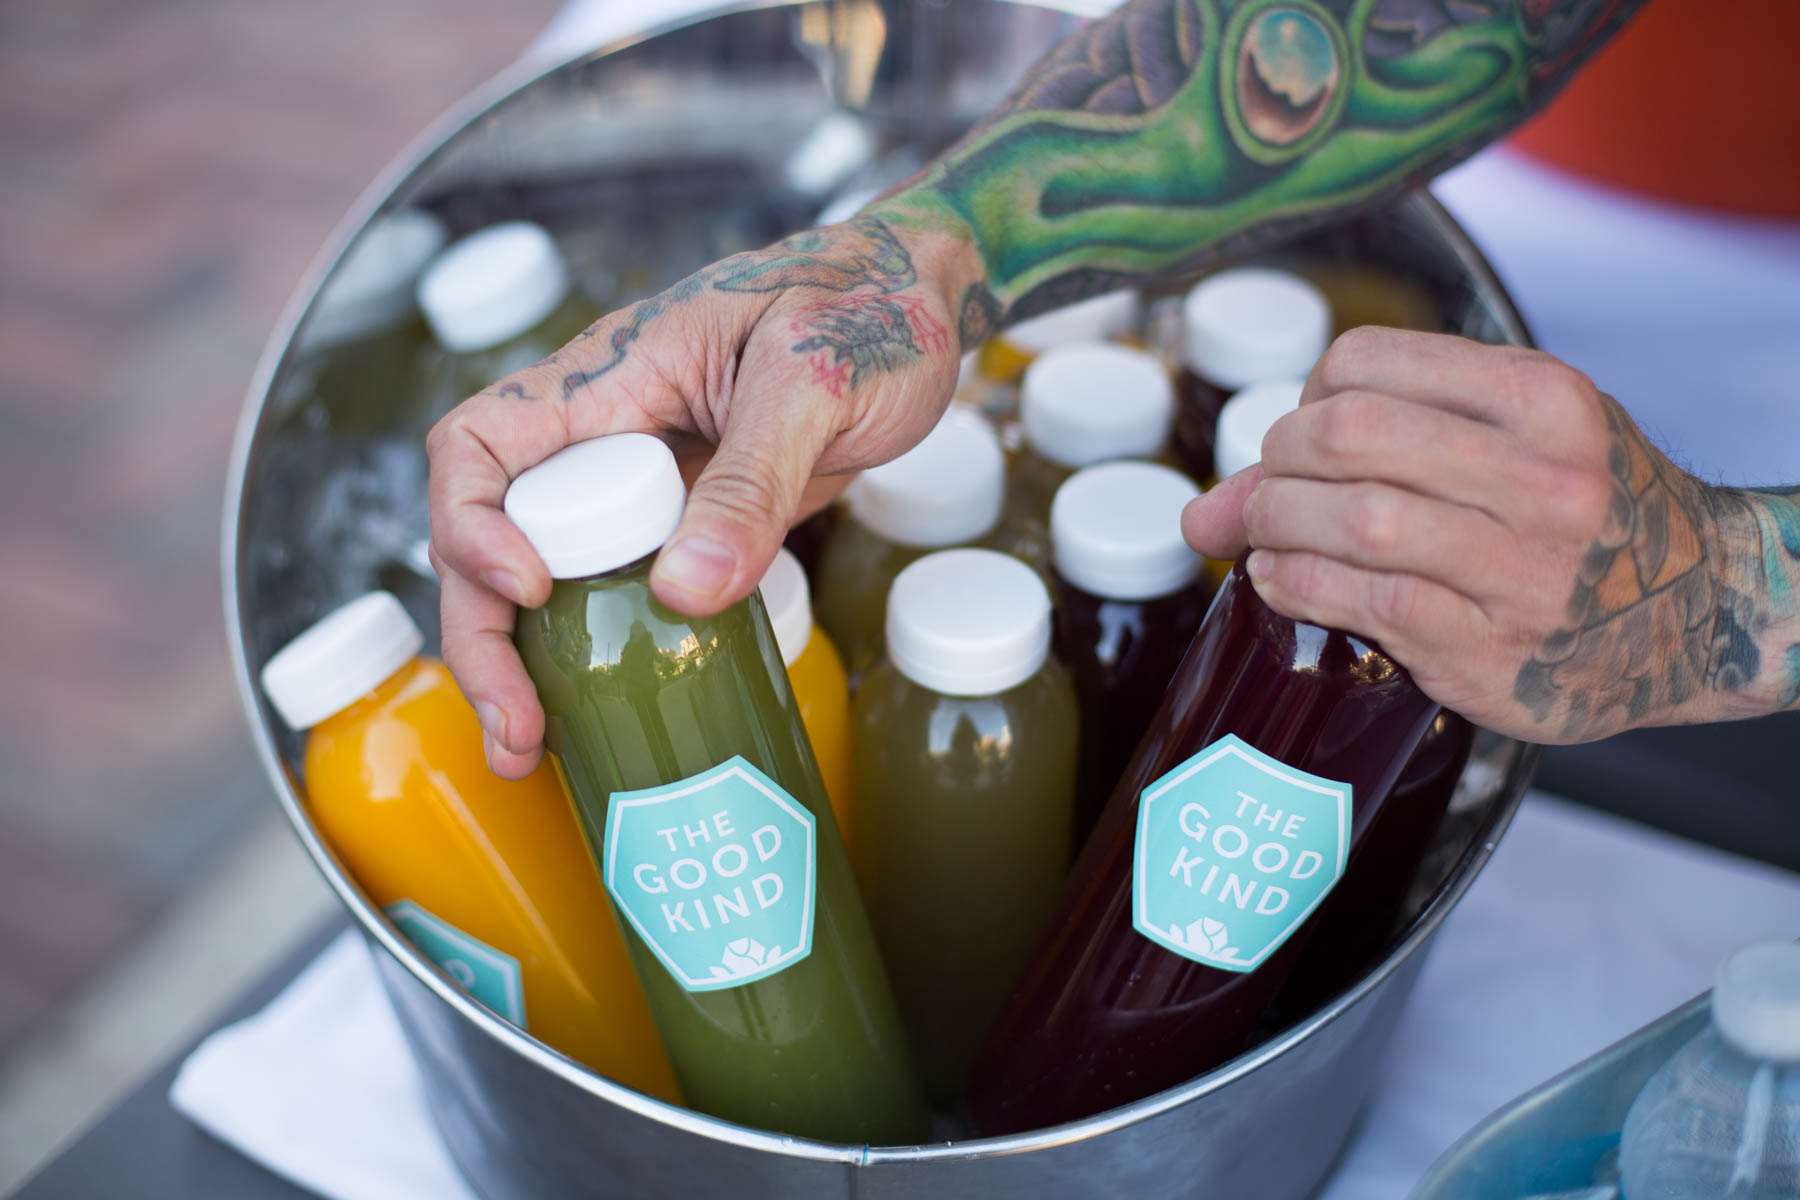 The Good Kind Cold Pressed Juice